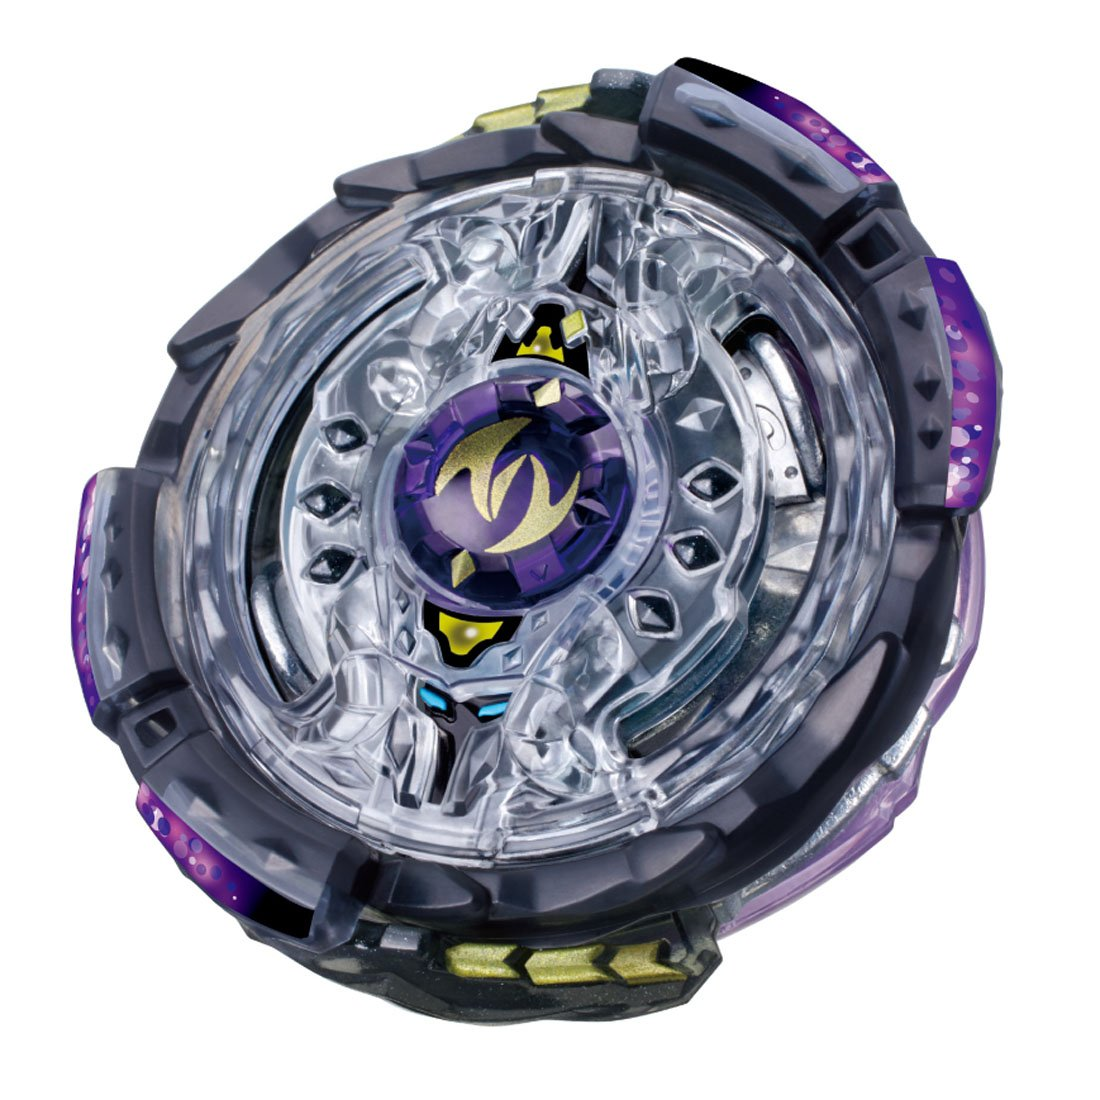 Takaratomy Beyblade Burst B-102 Twin Nemesis.3H.UI Attack Booster Top Pack Spinning